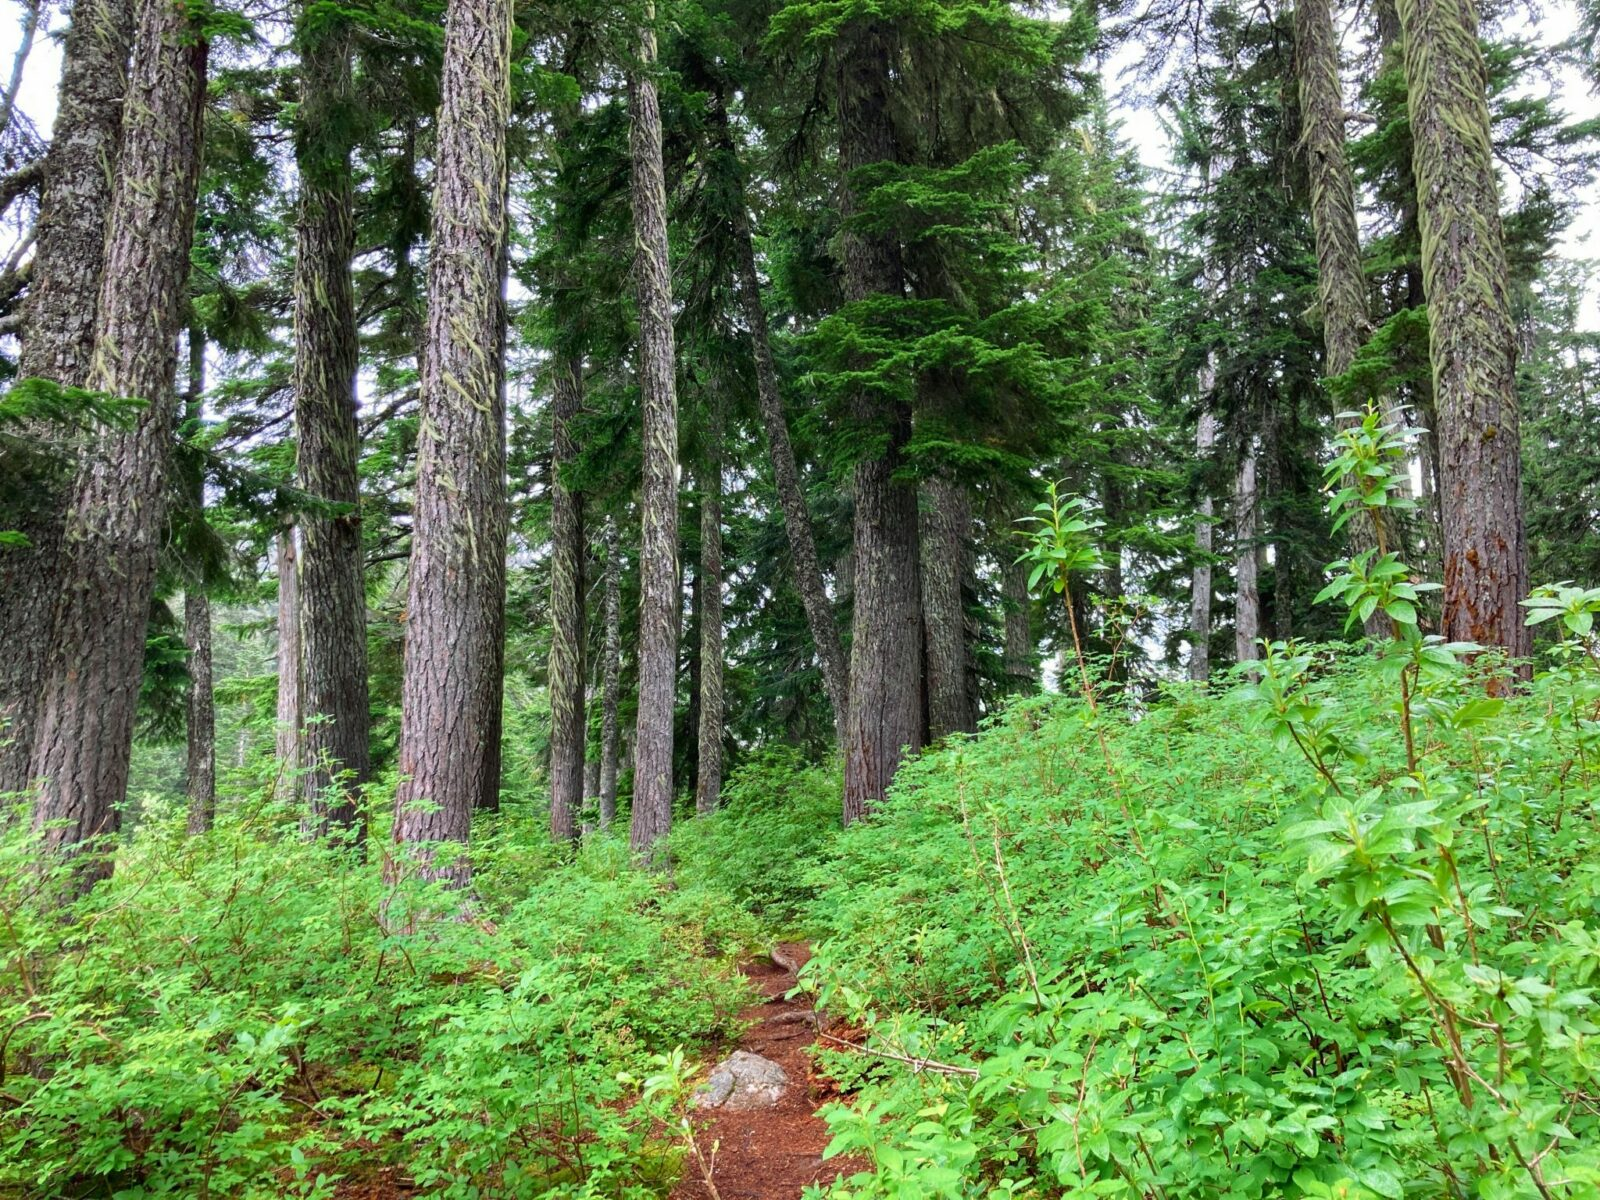 The forest along the Mirror Lake trail with green undergrowth